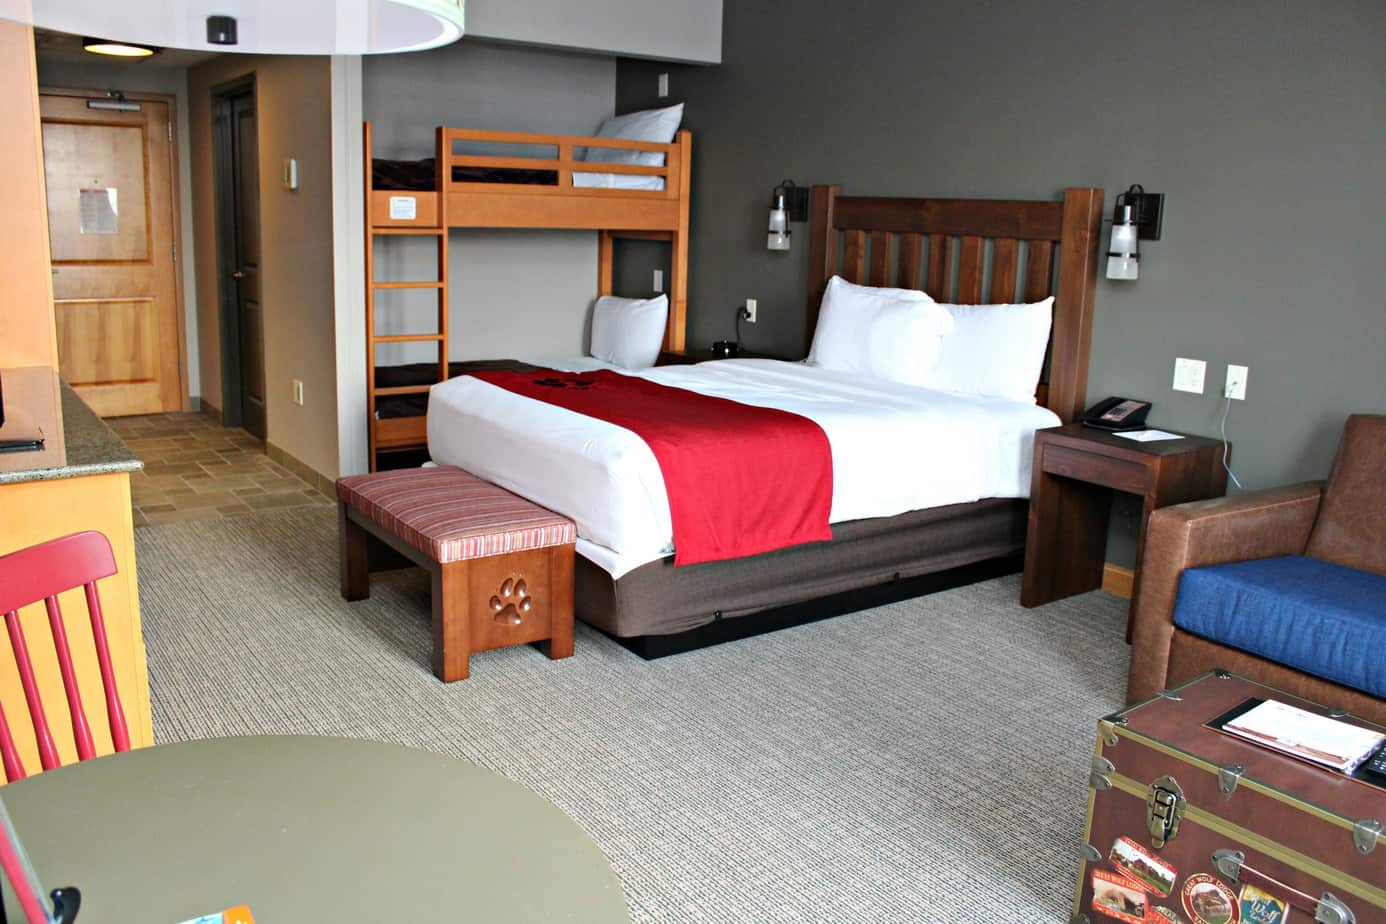 burnsville suite clsc executive mn king hor hotels rooms suites hotel travel mspbr and inn room minneapolis themed fairfield